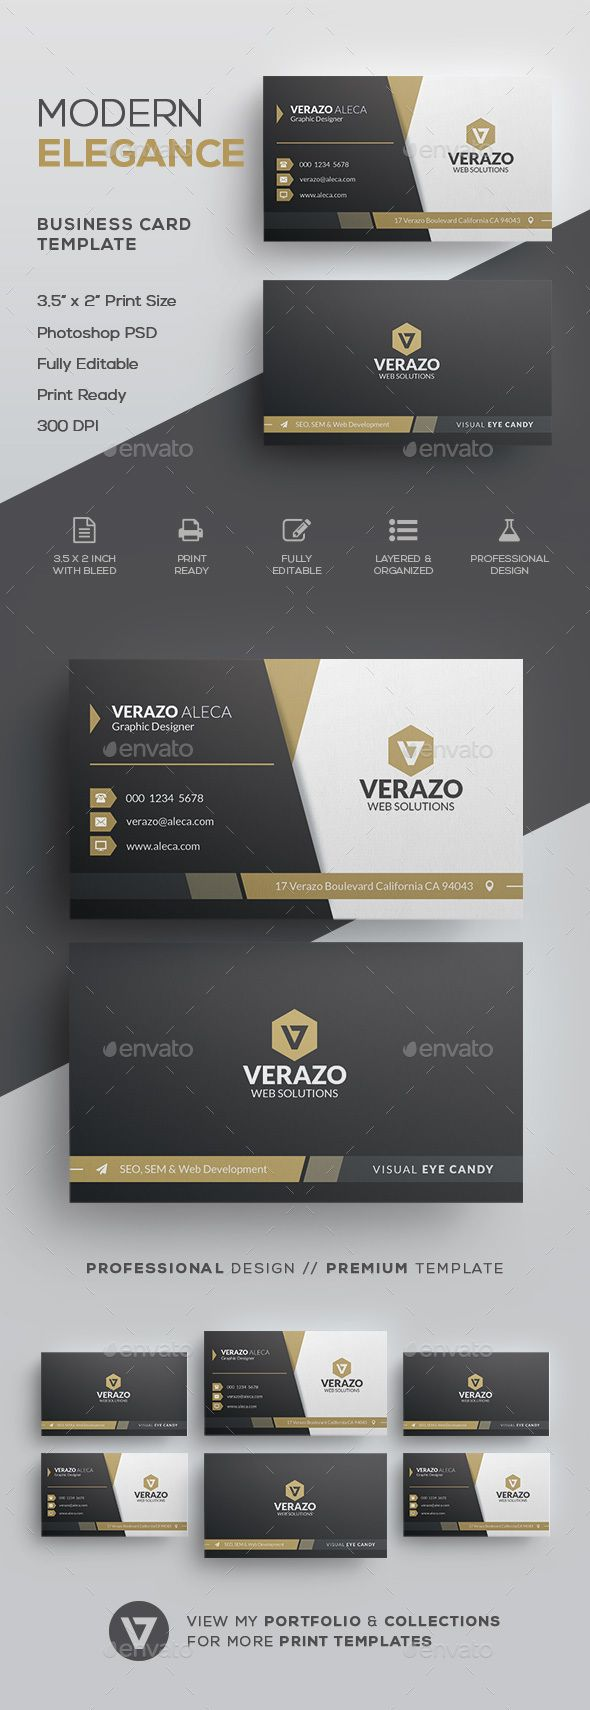 #Elegant Business Card Template - Corporate #Business #Cards Download here: https://graphicriver.net/item/elegant-business-card-template/19691024?ref=alena994